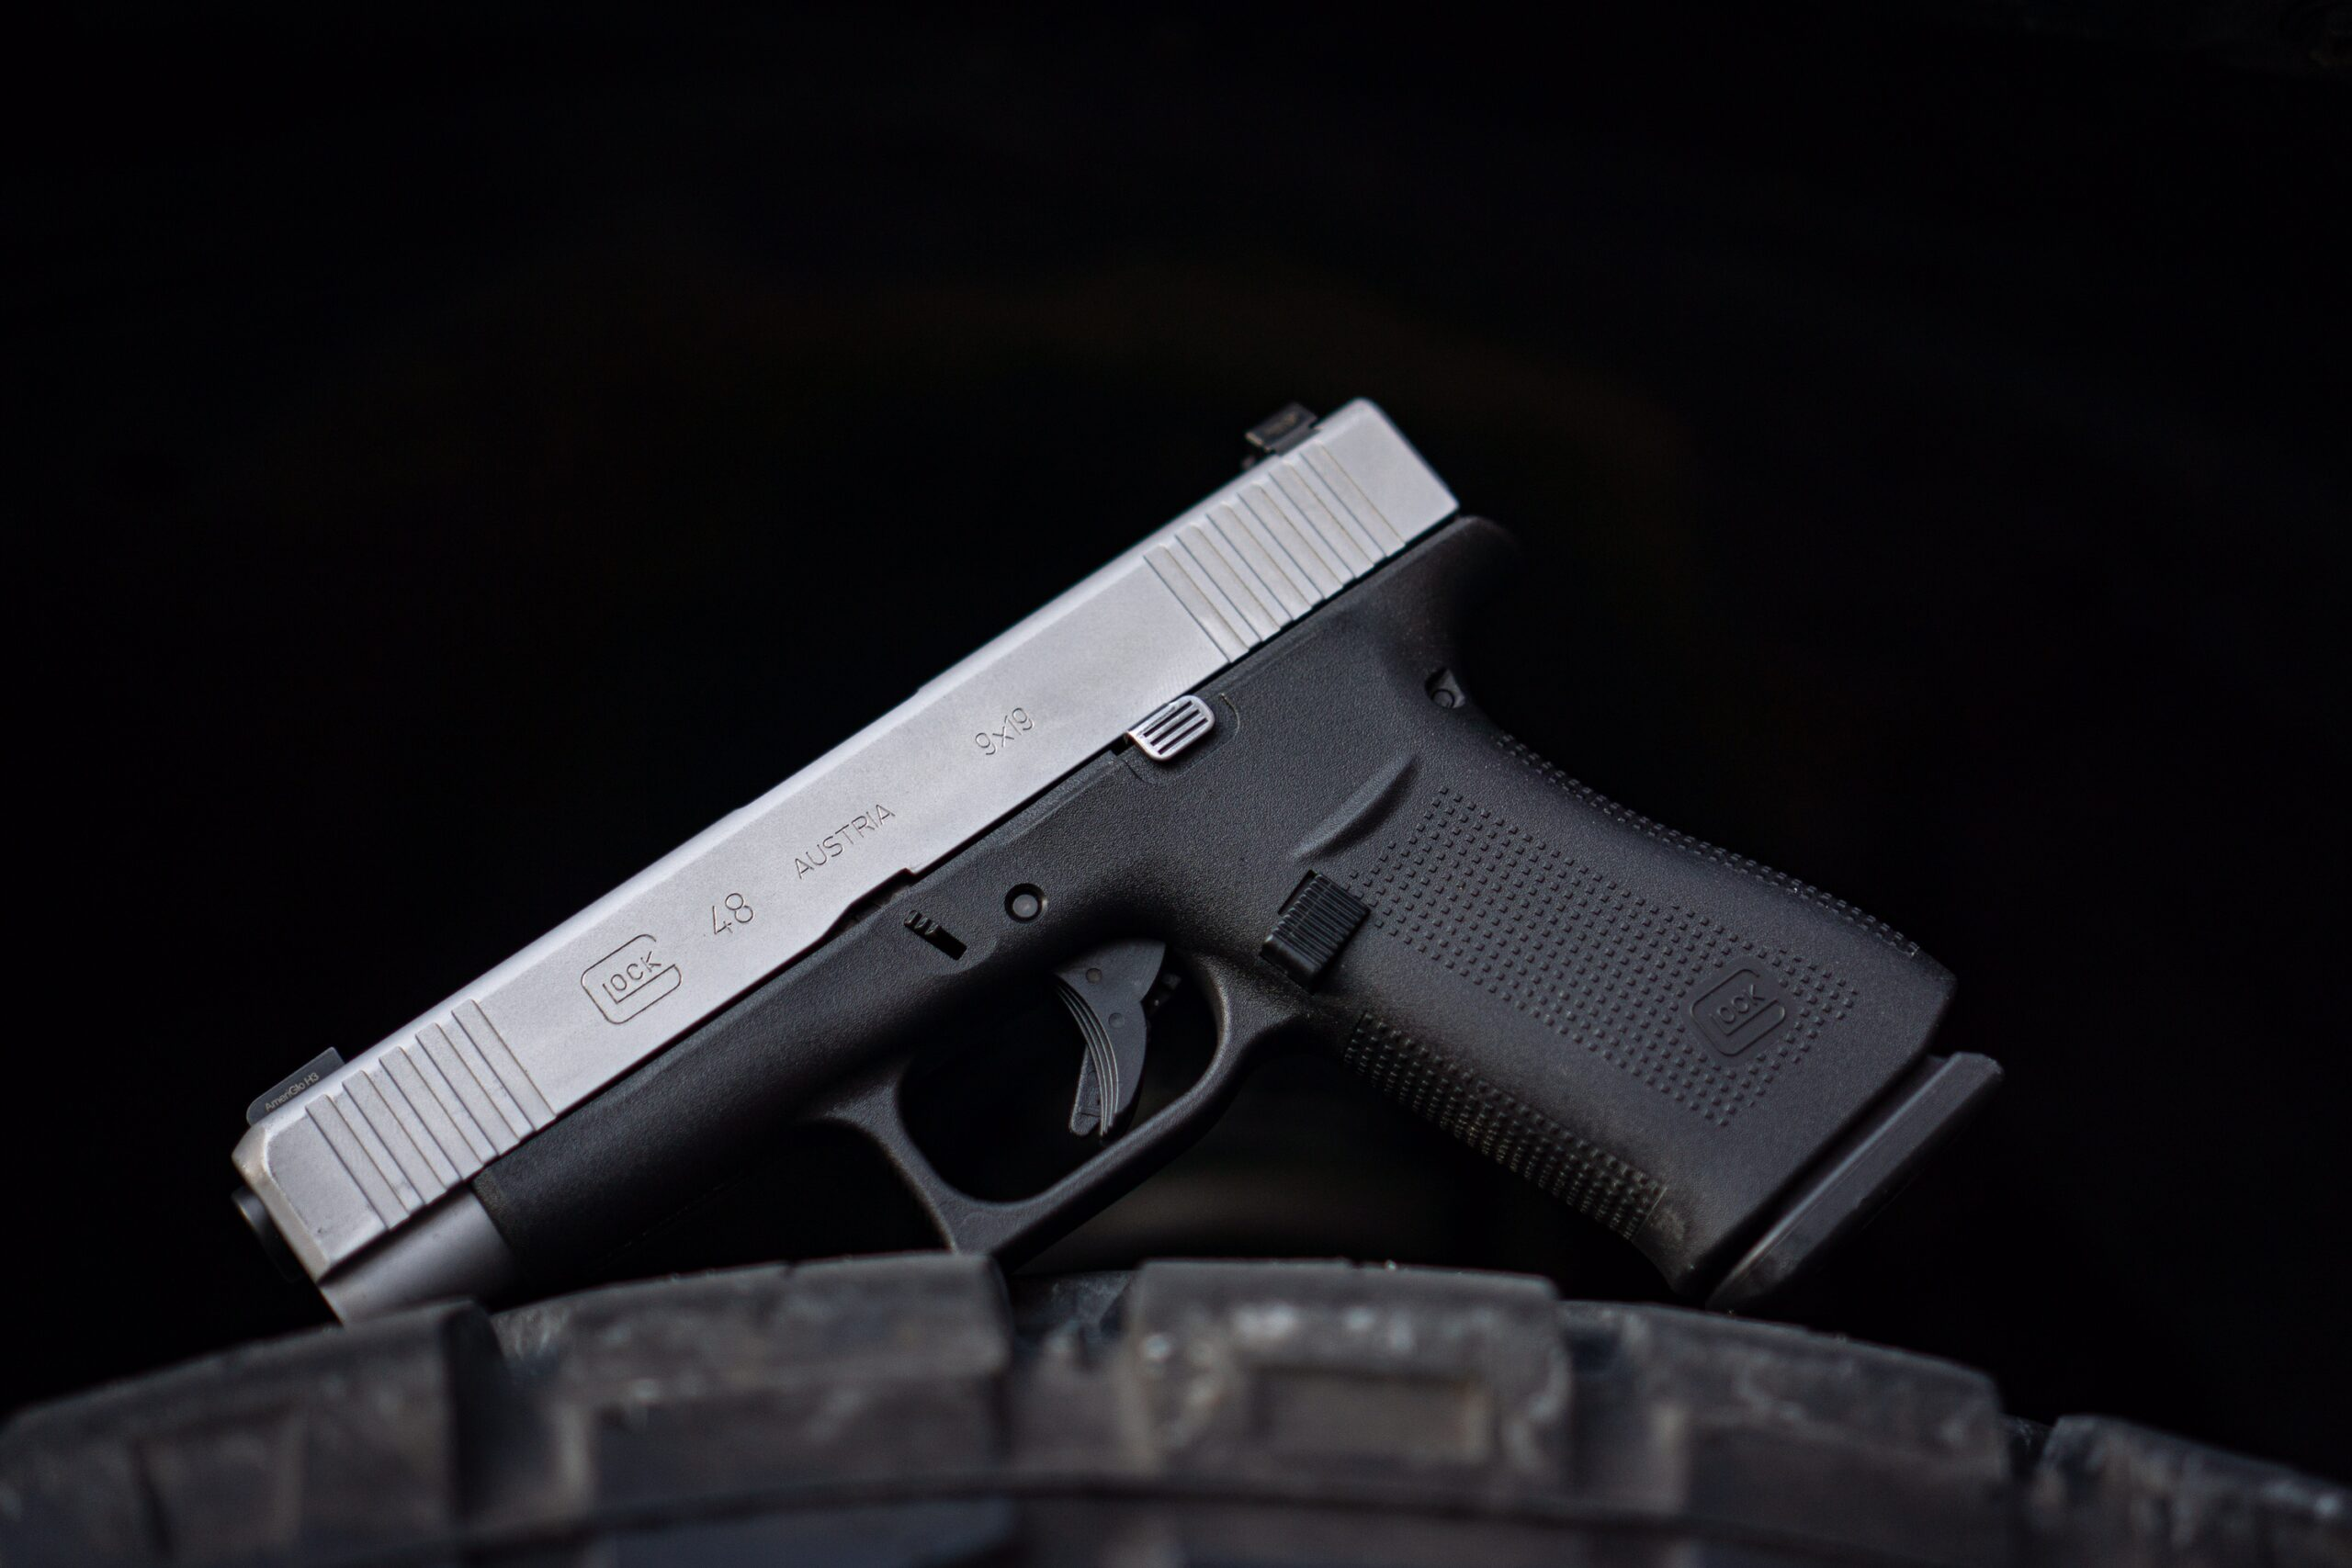 Glock 48 pistol used in our range review